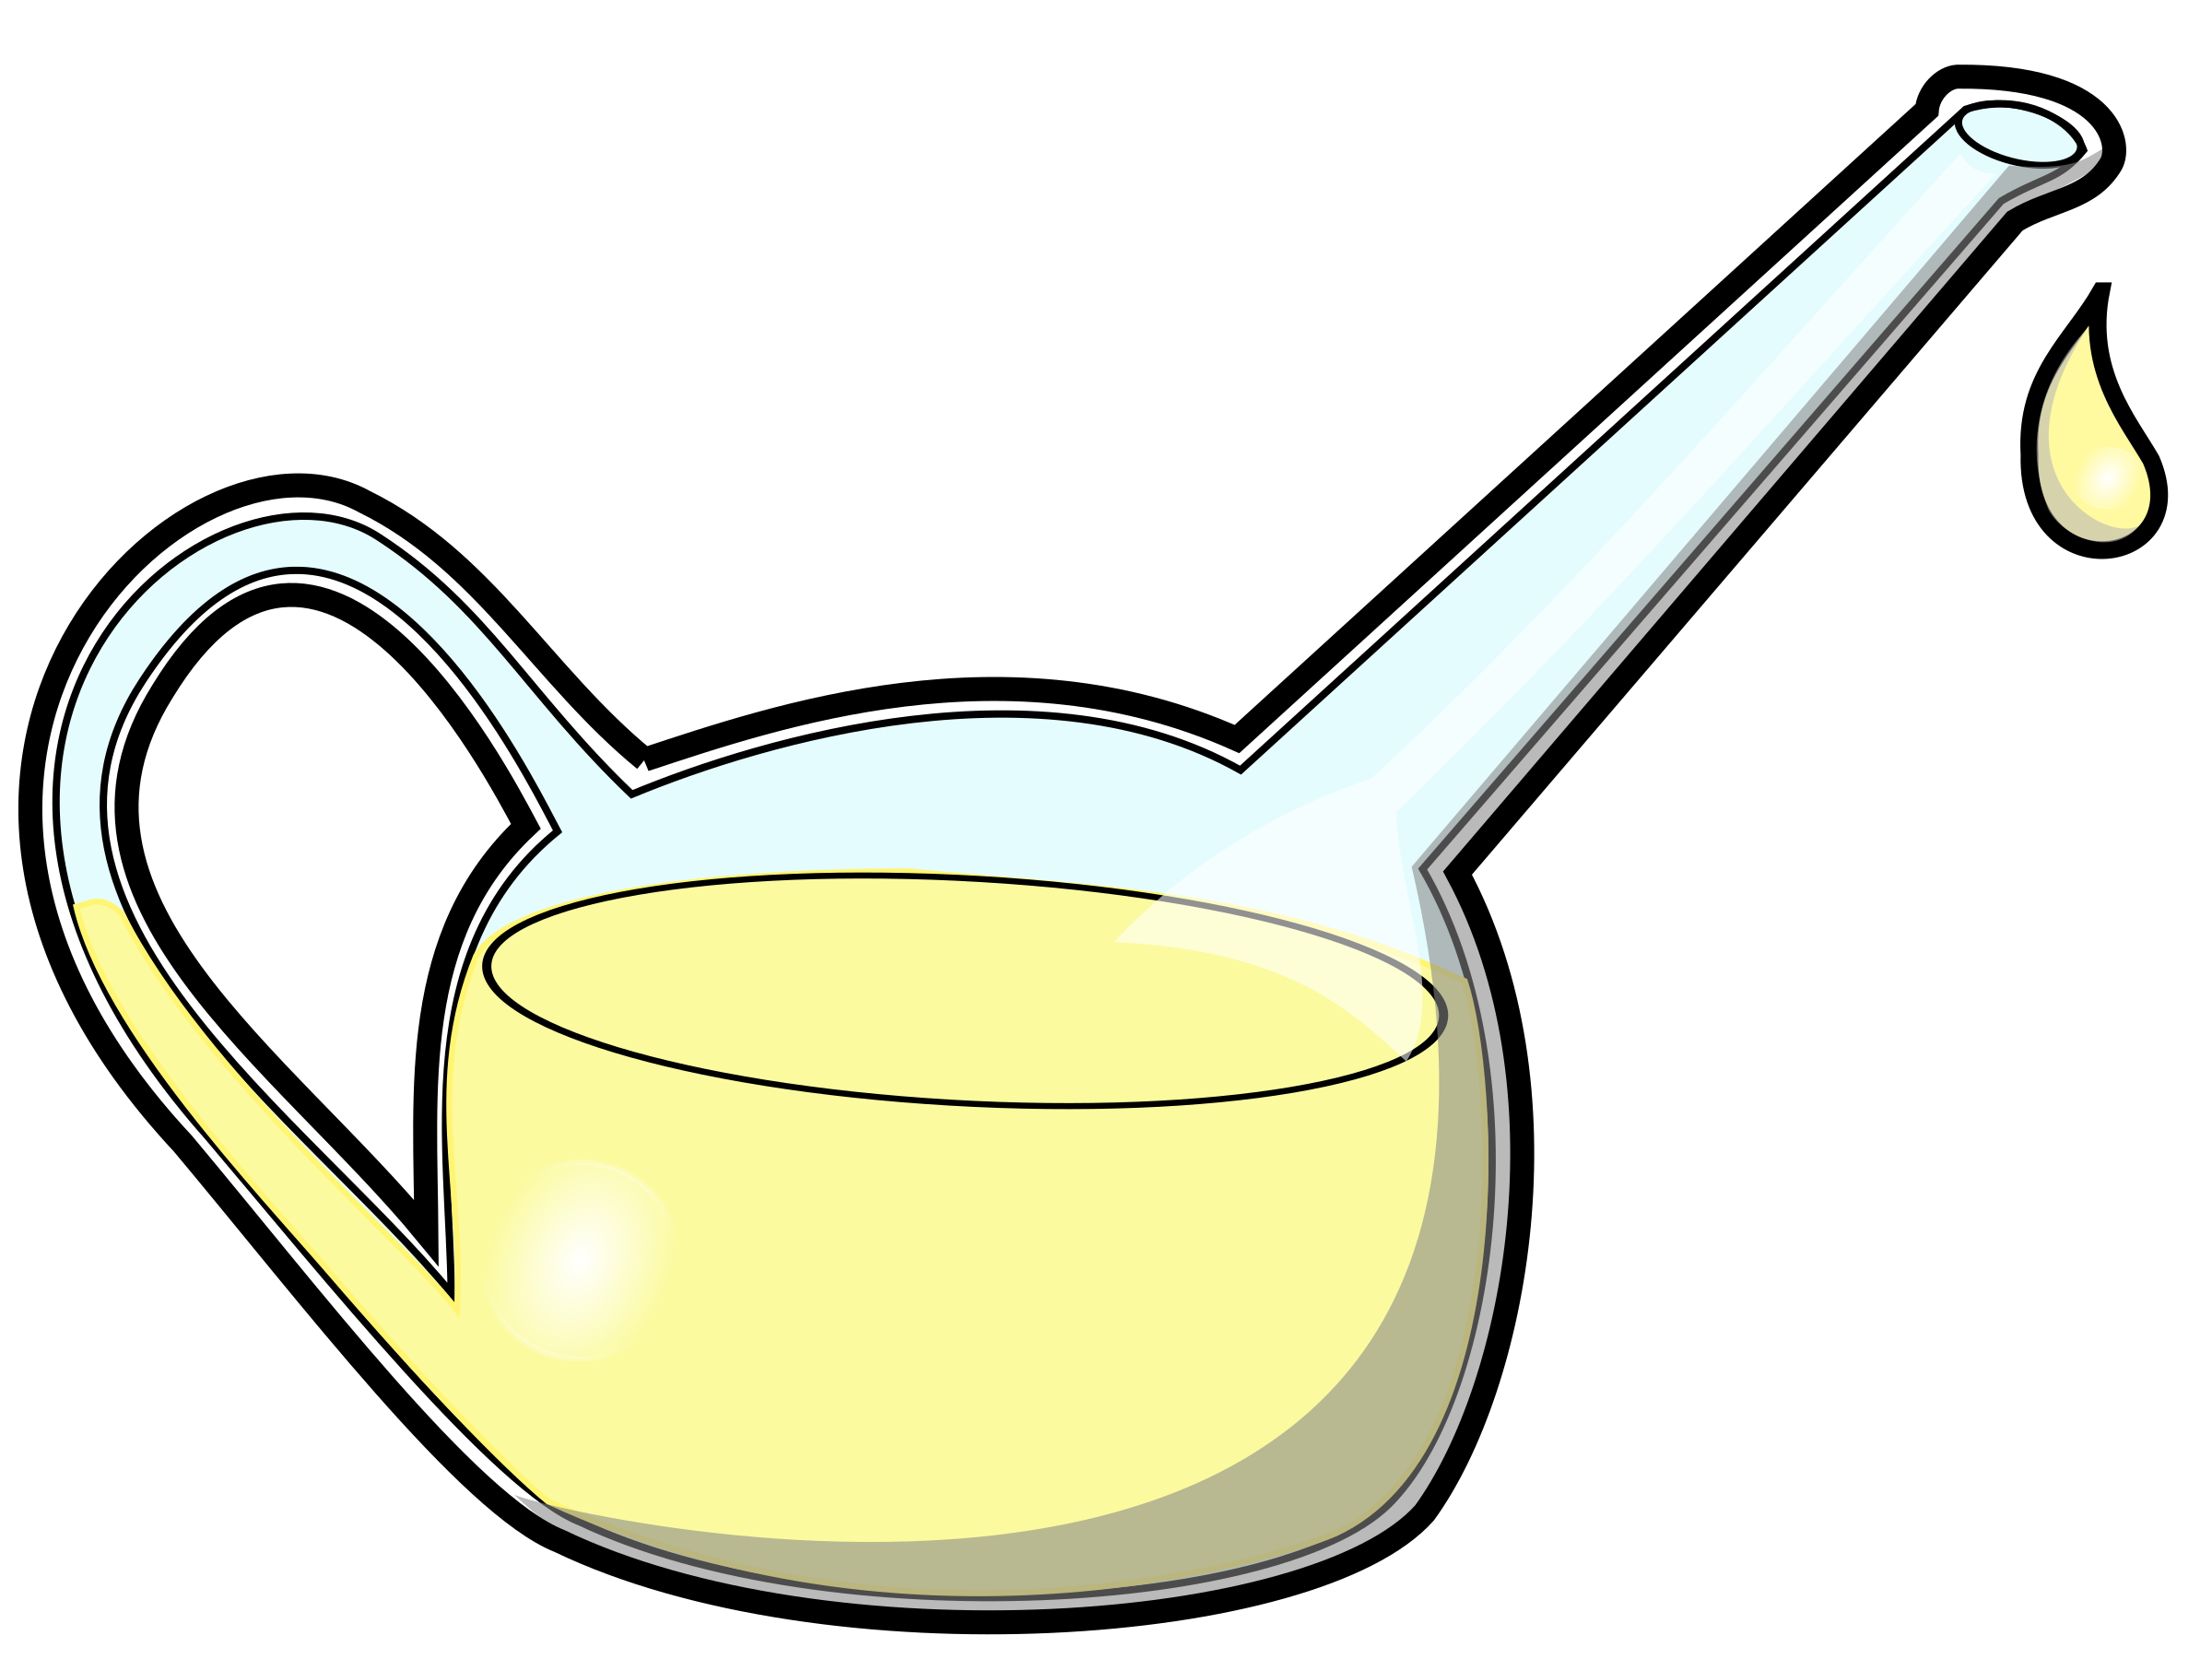 Oil clipart oil can Oil by can frankes can